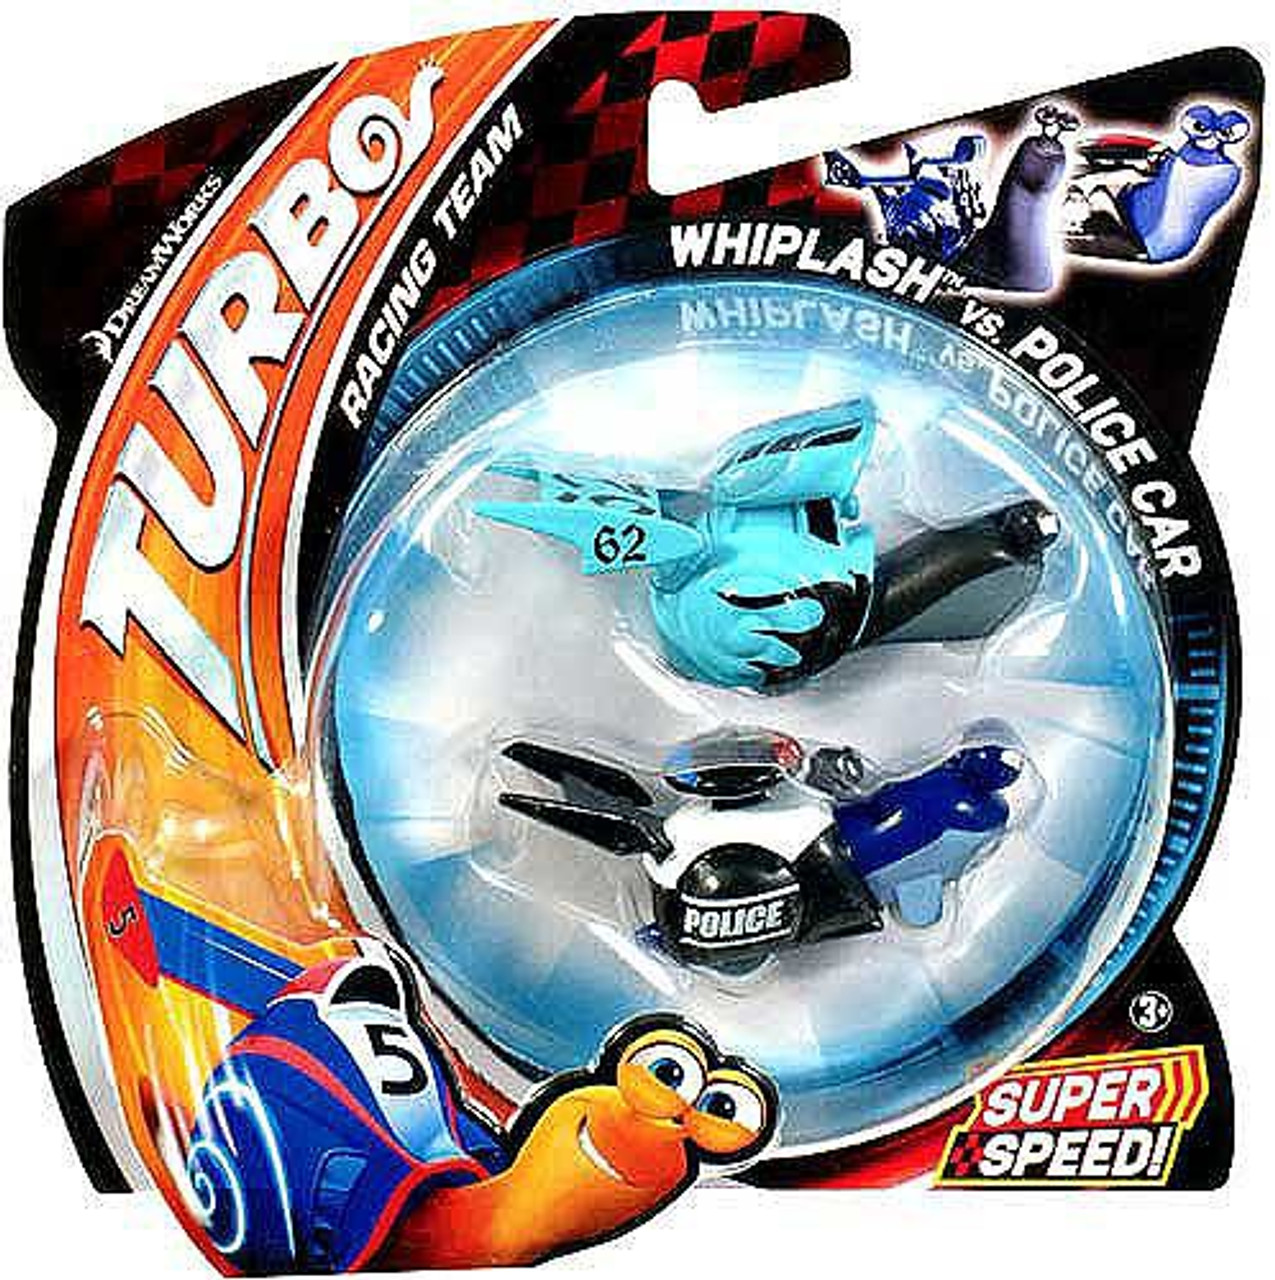 Turbo Whiplash vs Police Car Vehicle 2-Pack